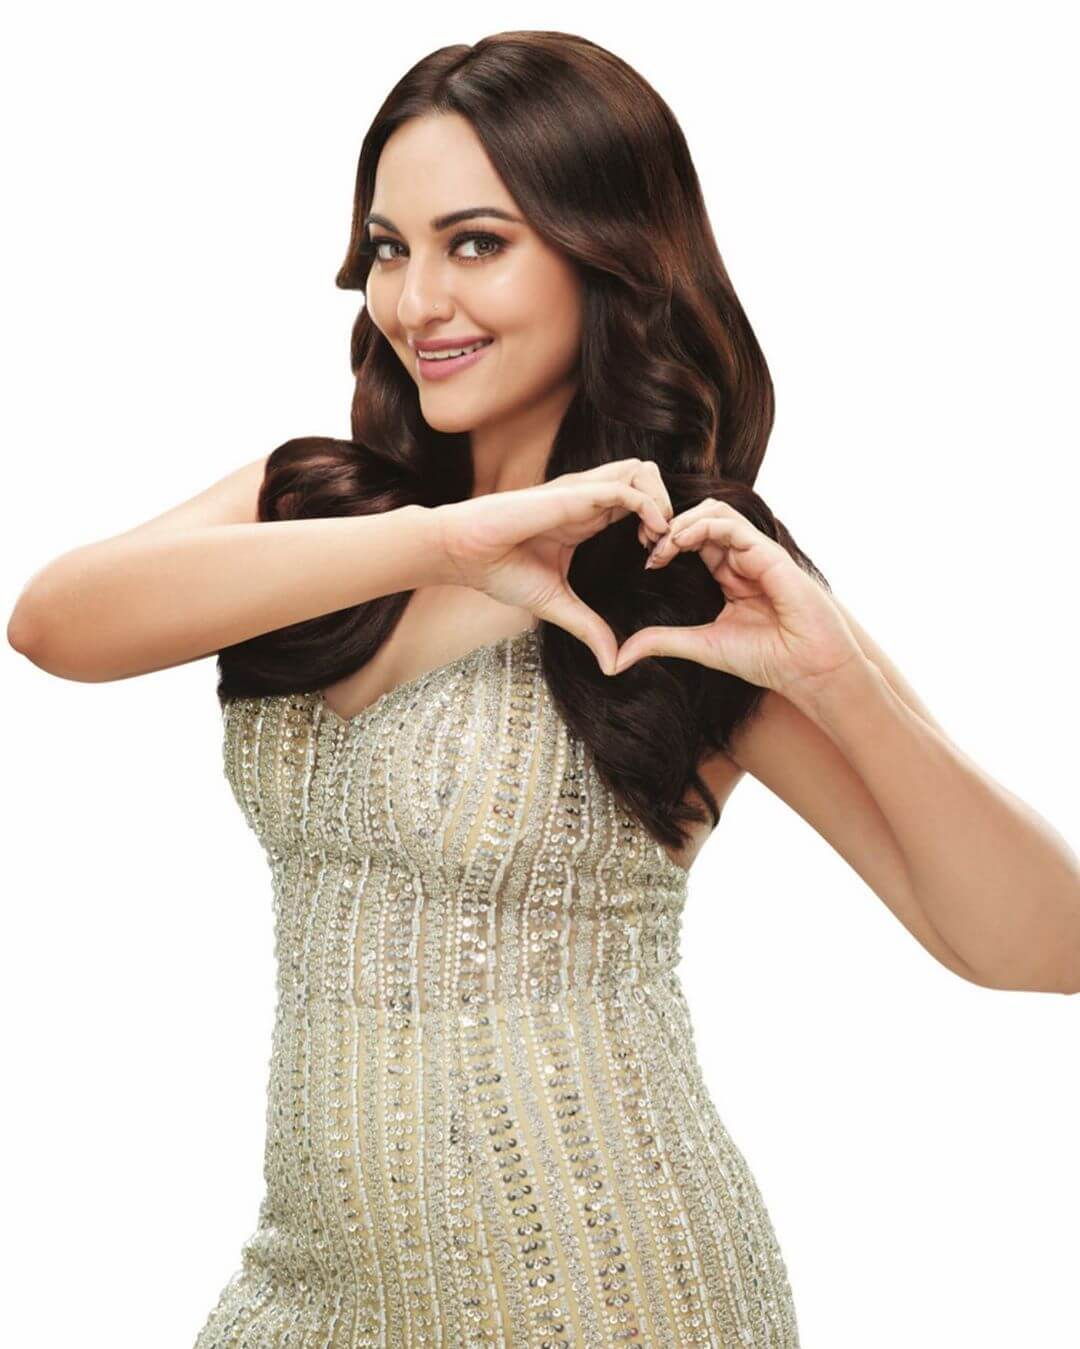 Sonakshi Sinha Biography Age Family Latest Hot Photos 2020, Photos, Videos, Full Movie Watch Online Free Down Load Leaked By Tamilrockers, Down Load Torrent Telegram File Link